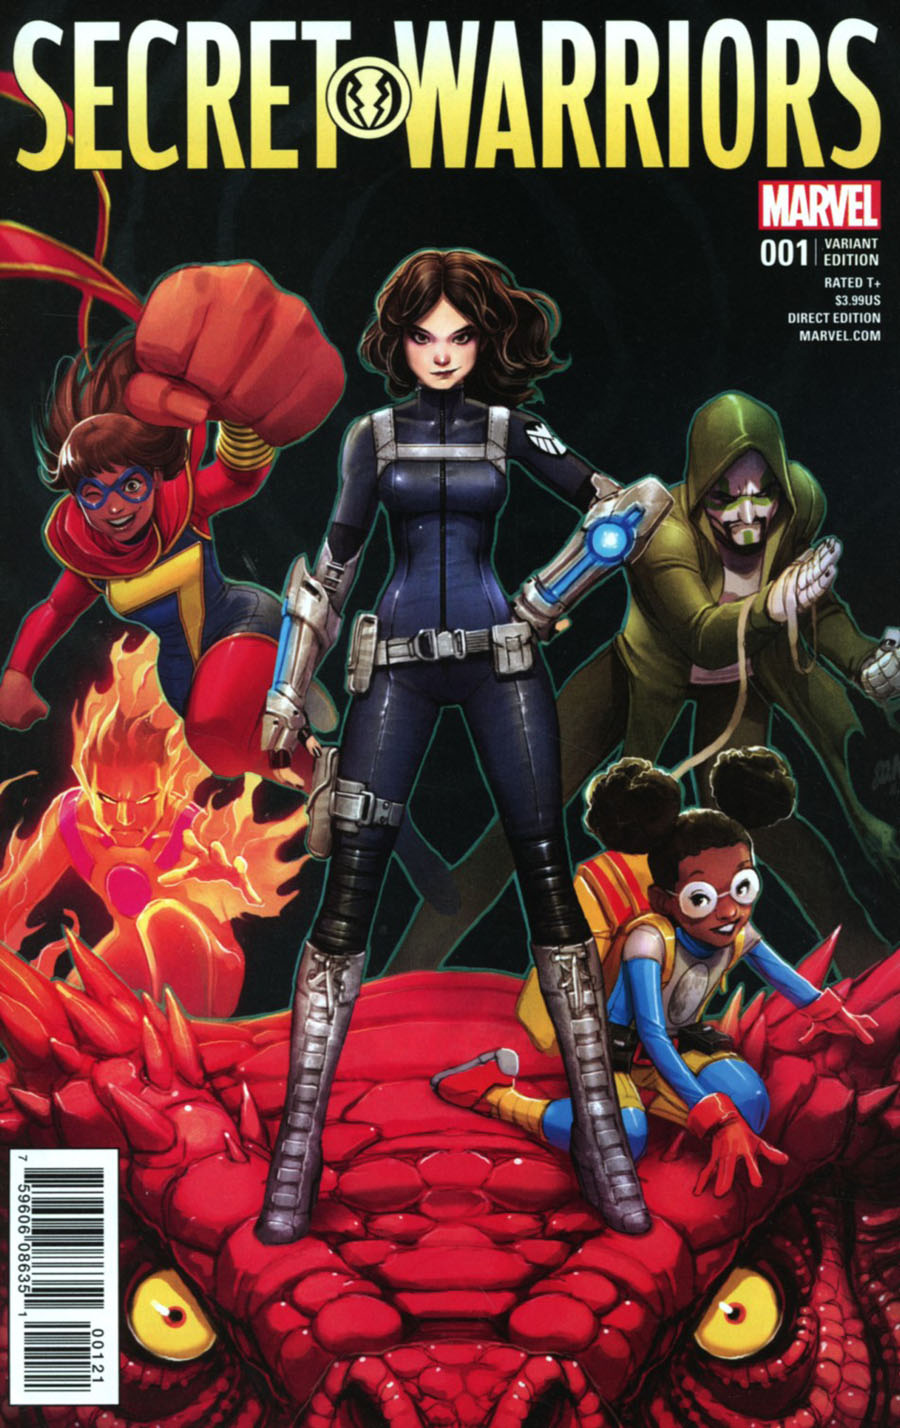 Secret Warriors Vol 2 #1 Cover C Incentive David Nakayama Variant Cover (Secret Empire Tie-In)